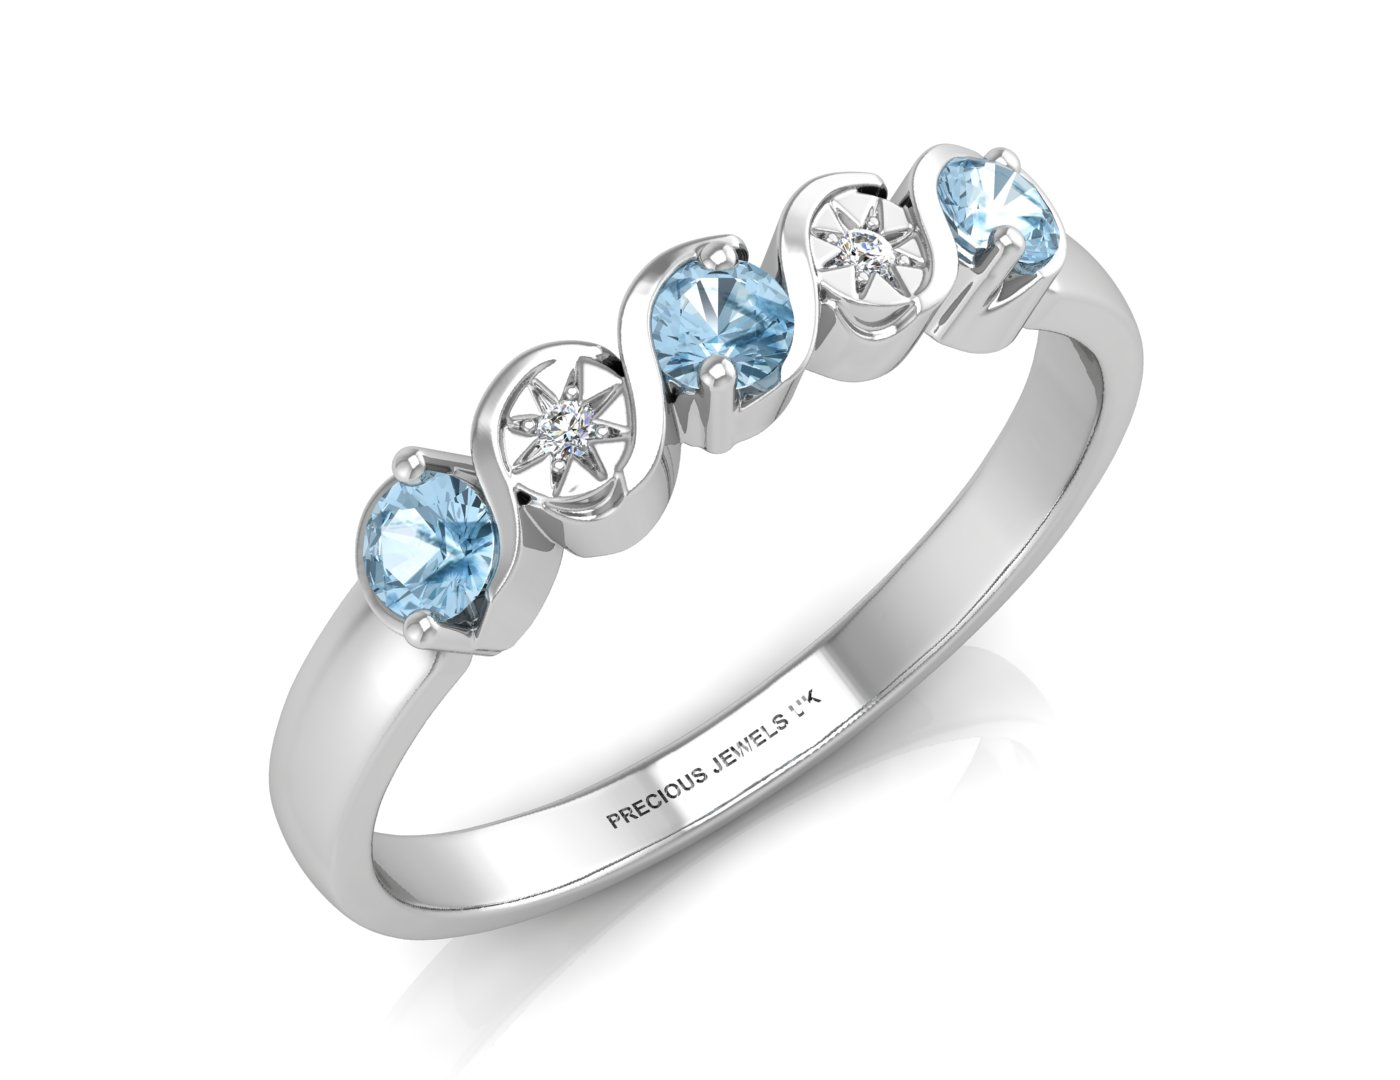 9ct White Gold Semi Eternity Diamond And Blue Topaz Ring 0.01 Carats